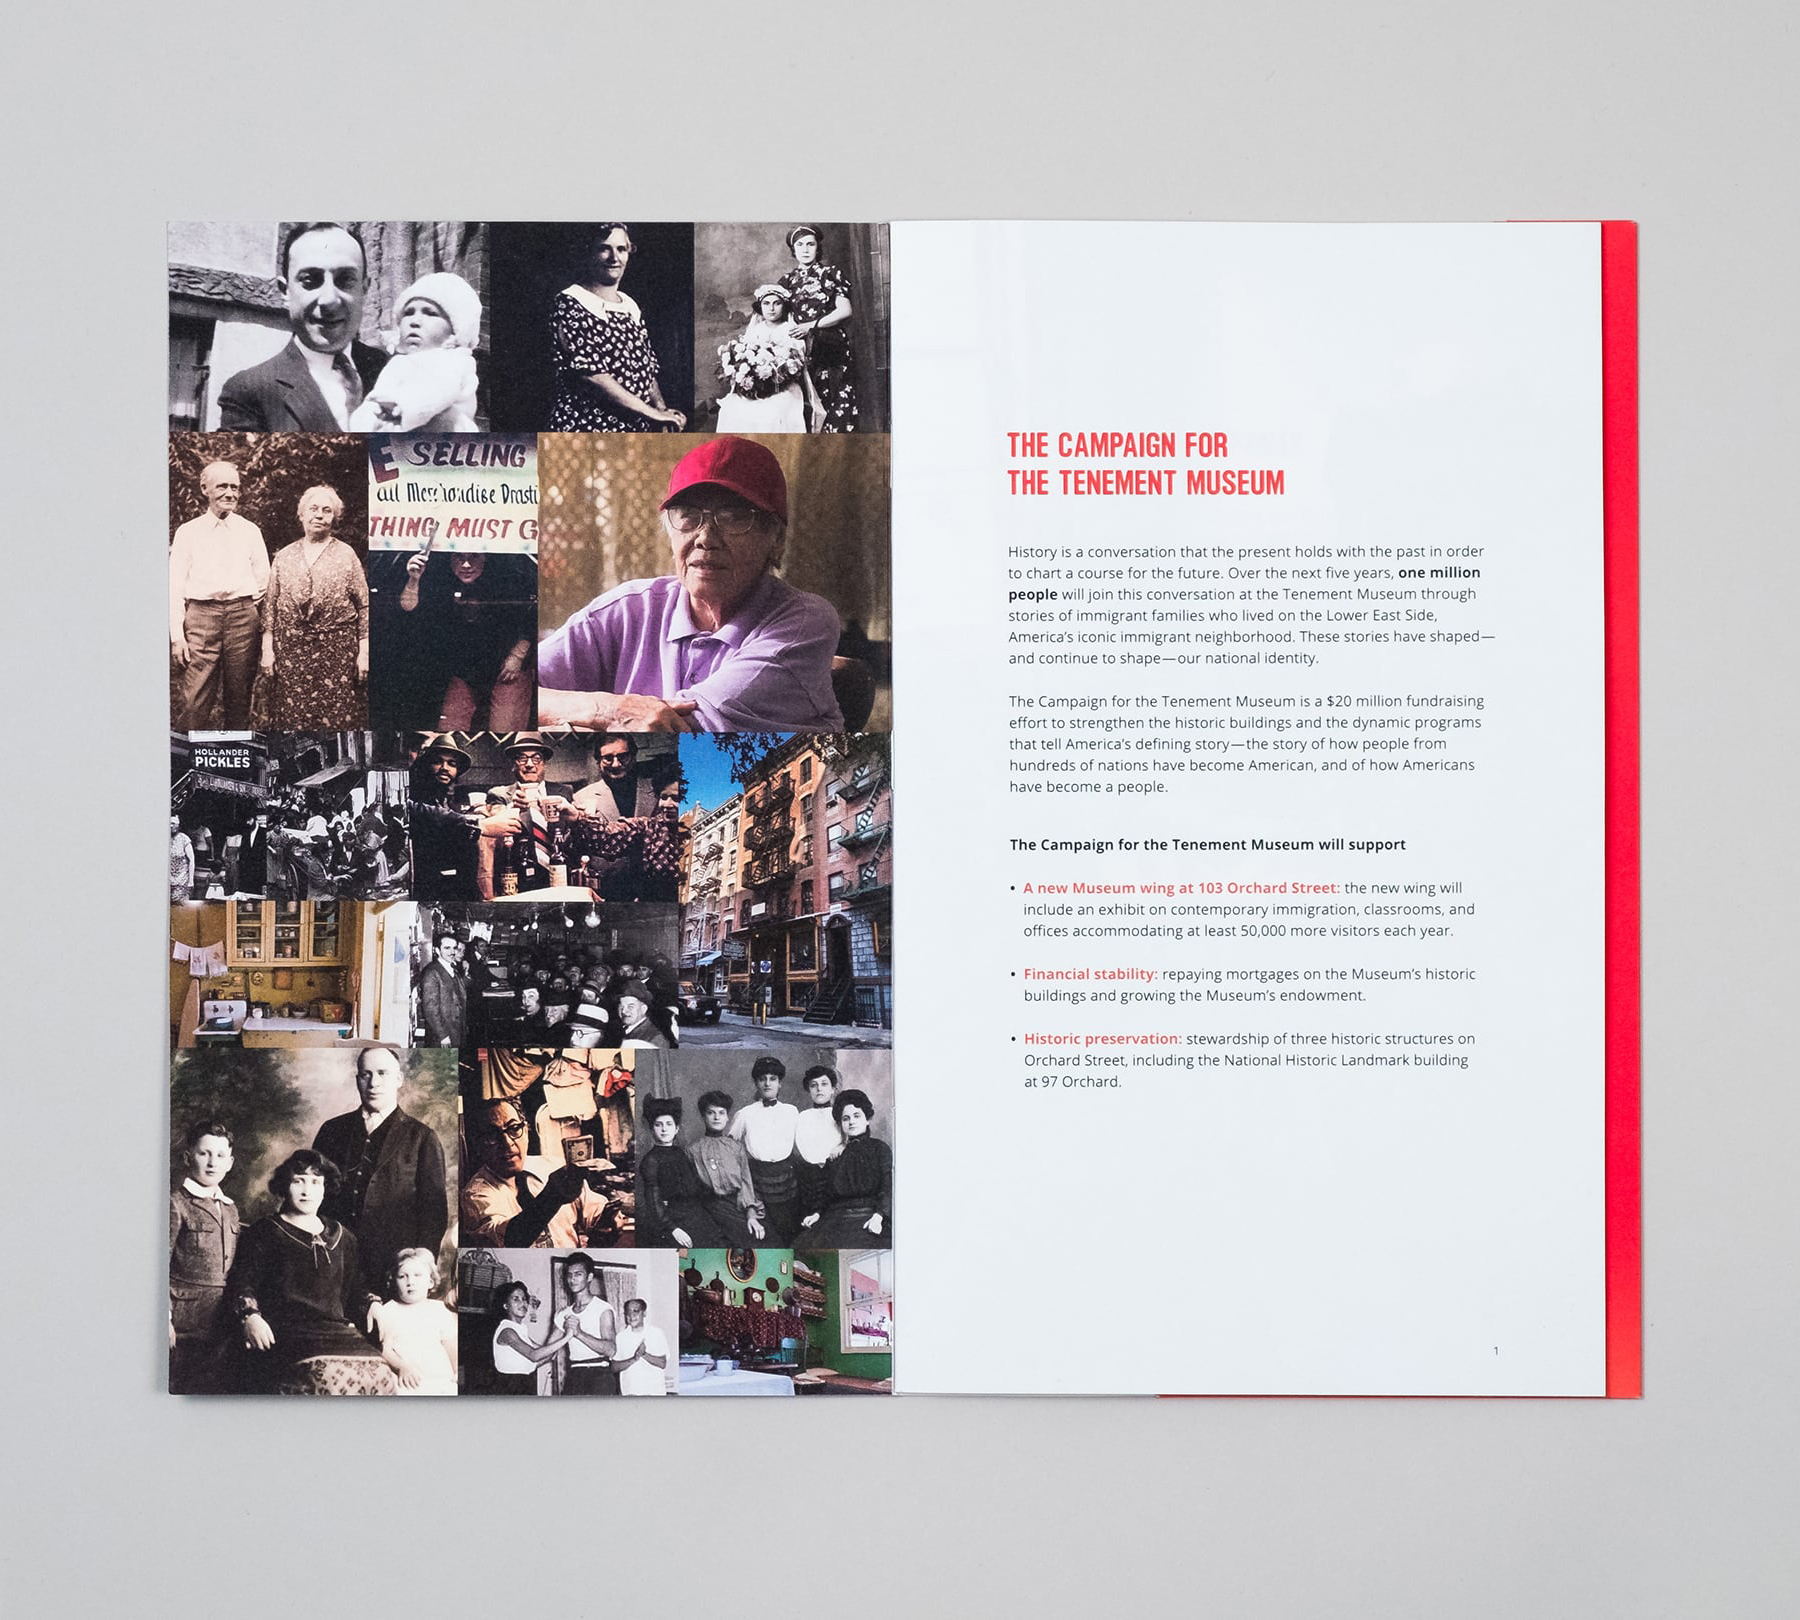 Interior spread of fundraising campaign case statement with photo collage of past tenement residents